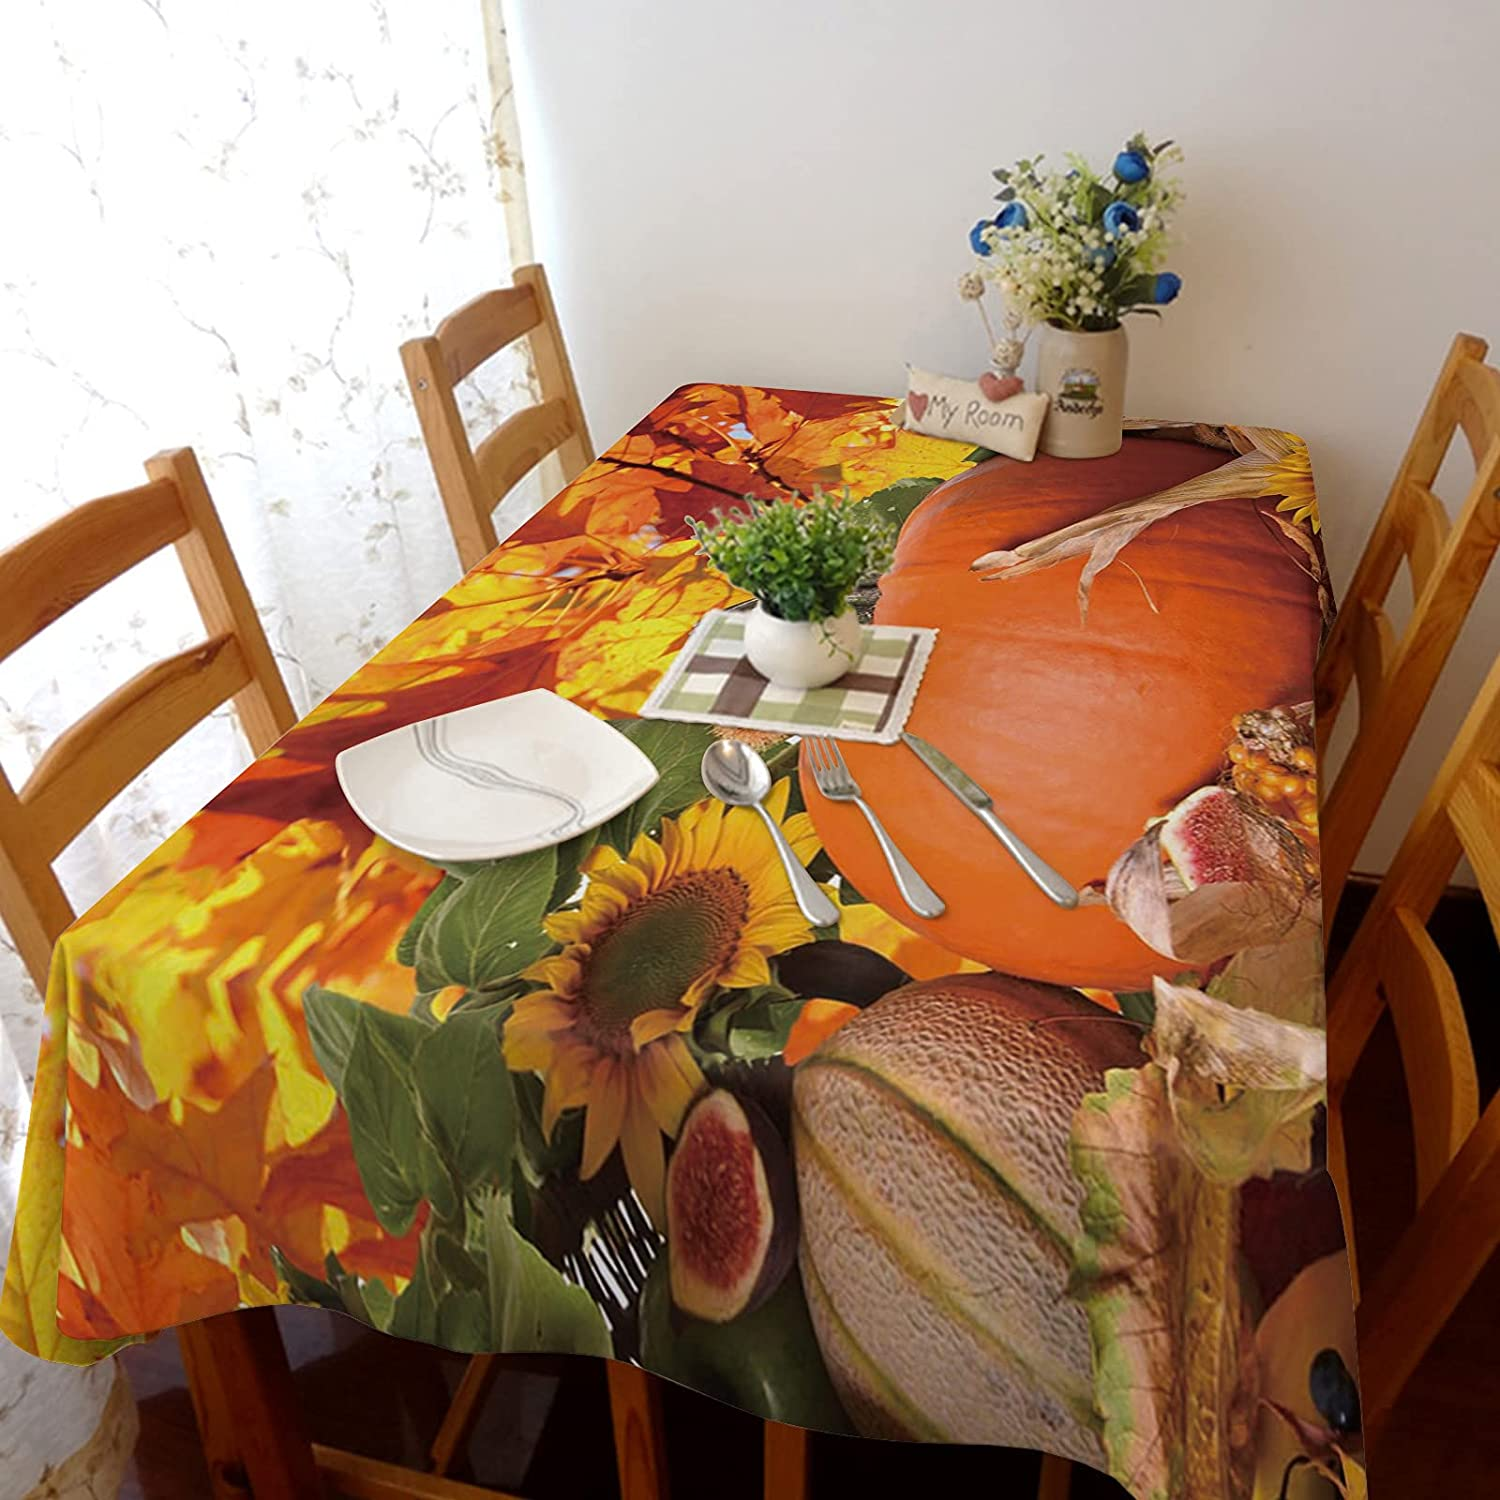 TH XHome Max 60% OFF Direct stock discount Tablecloth Linen Burlap L Maple Pumpkin Weights Fabric